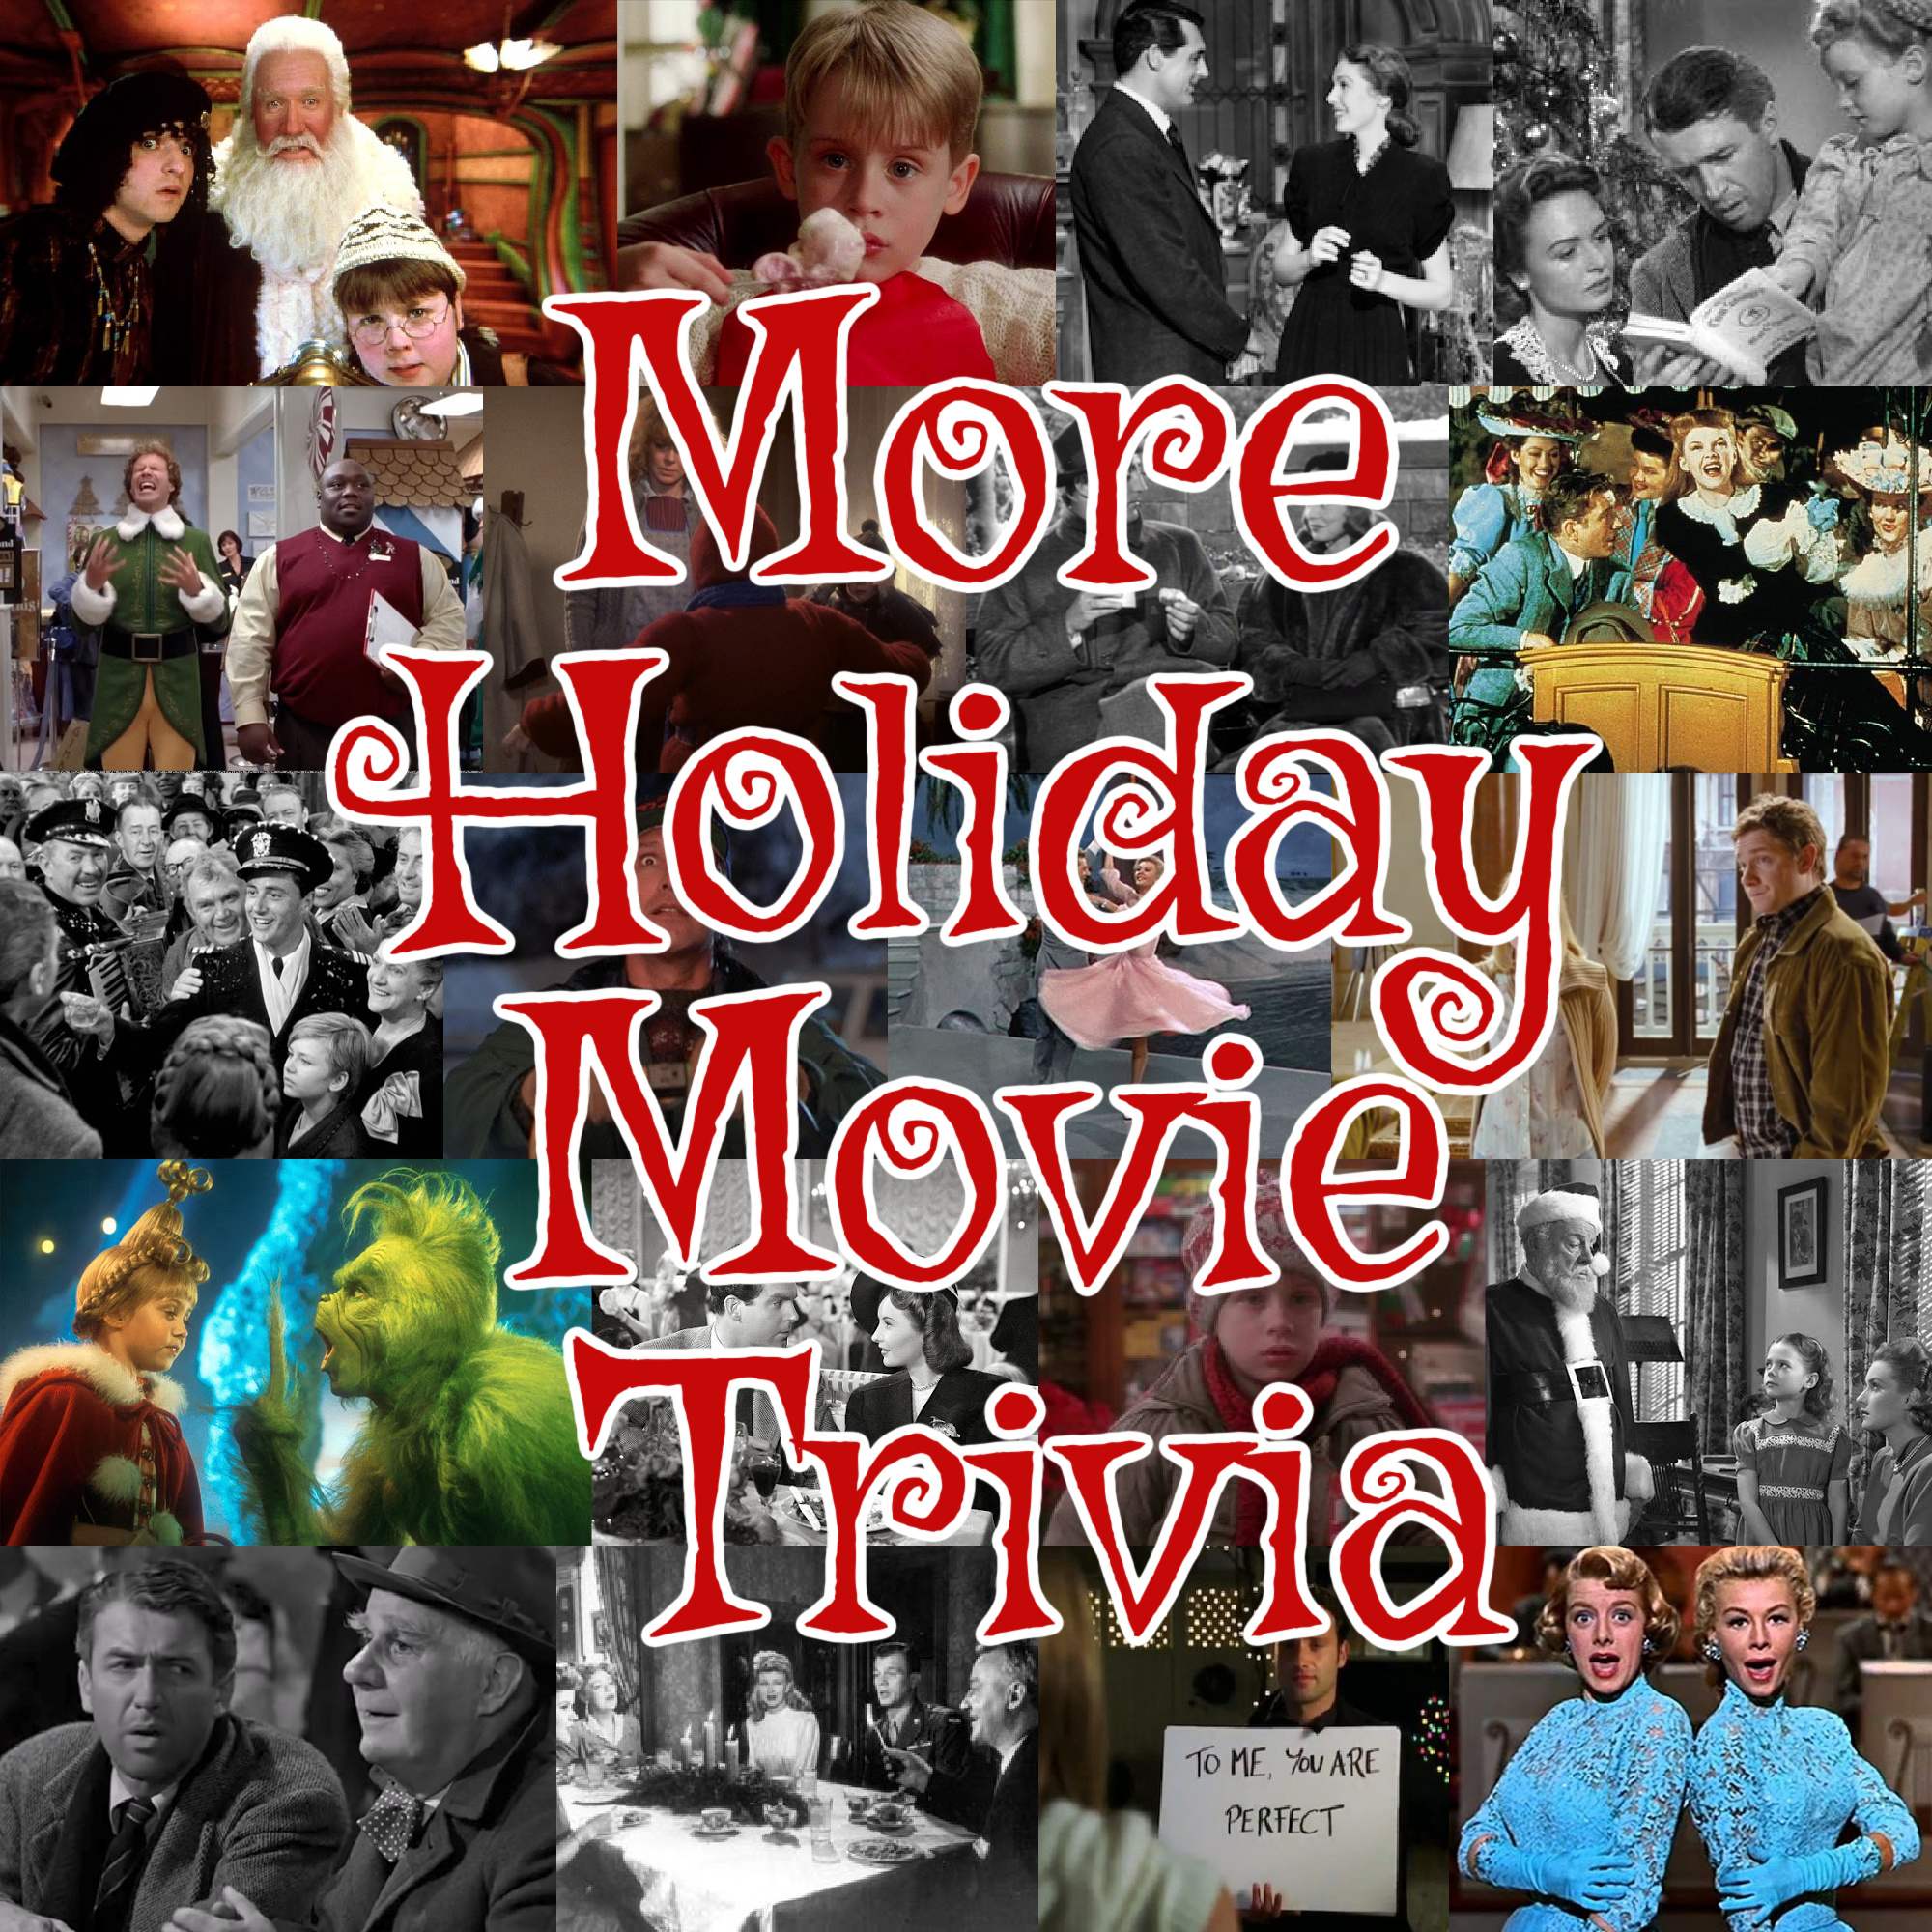 More Holiday Movie Trivia text over collage of Christmas movie photos